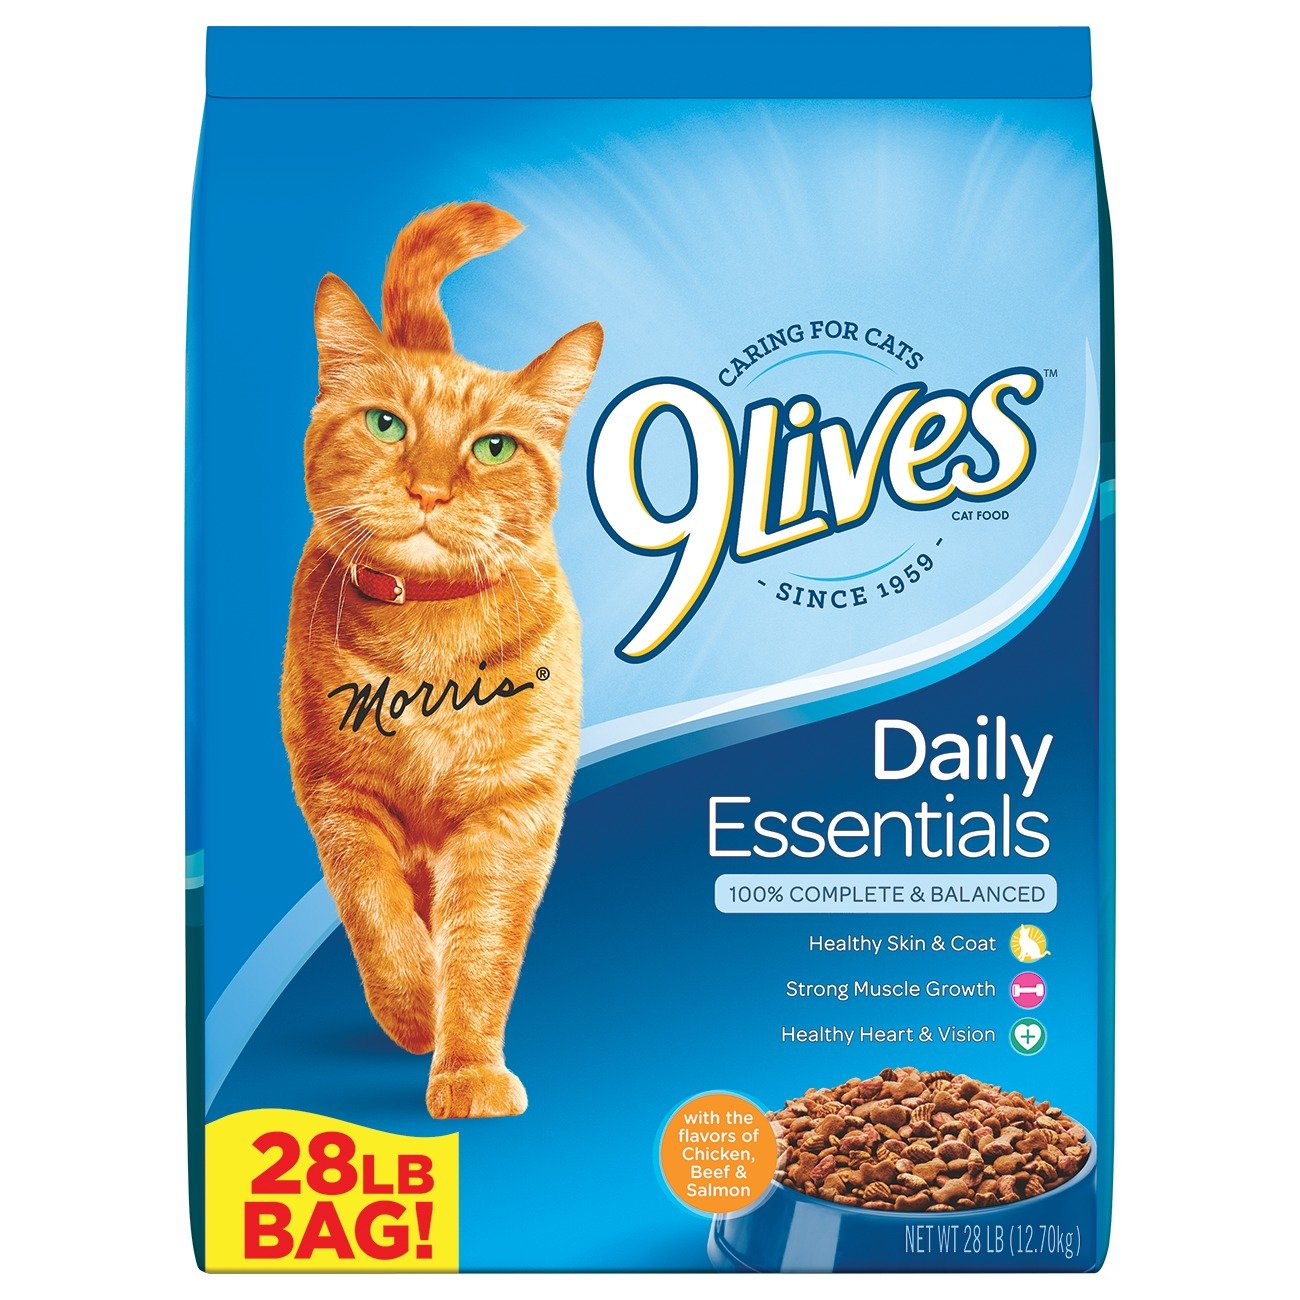 Large 9Lives 28 lb Daily Essentials Dry Cat Food, Large